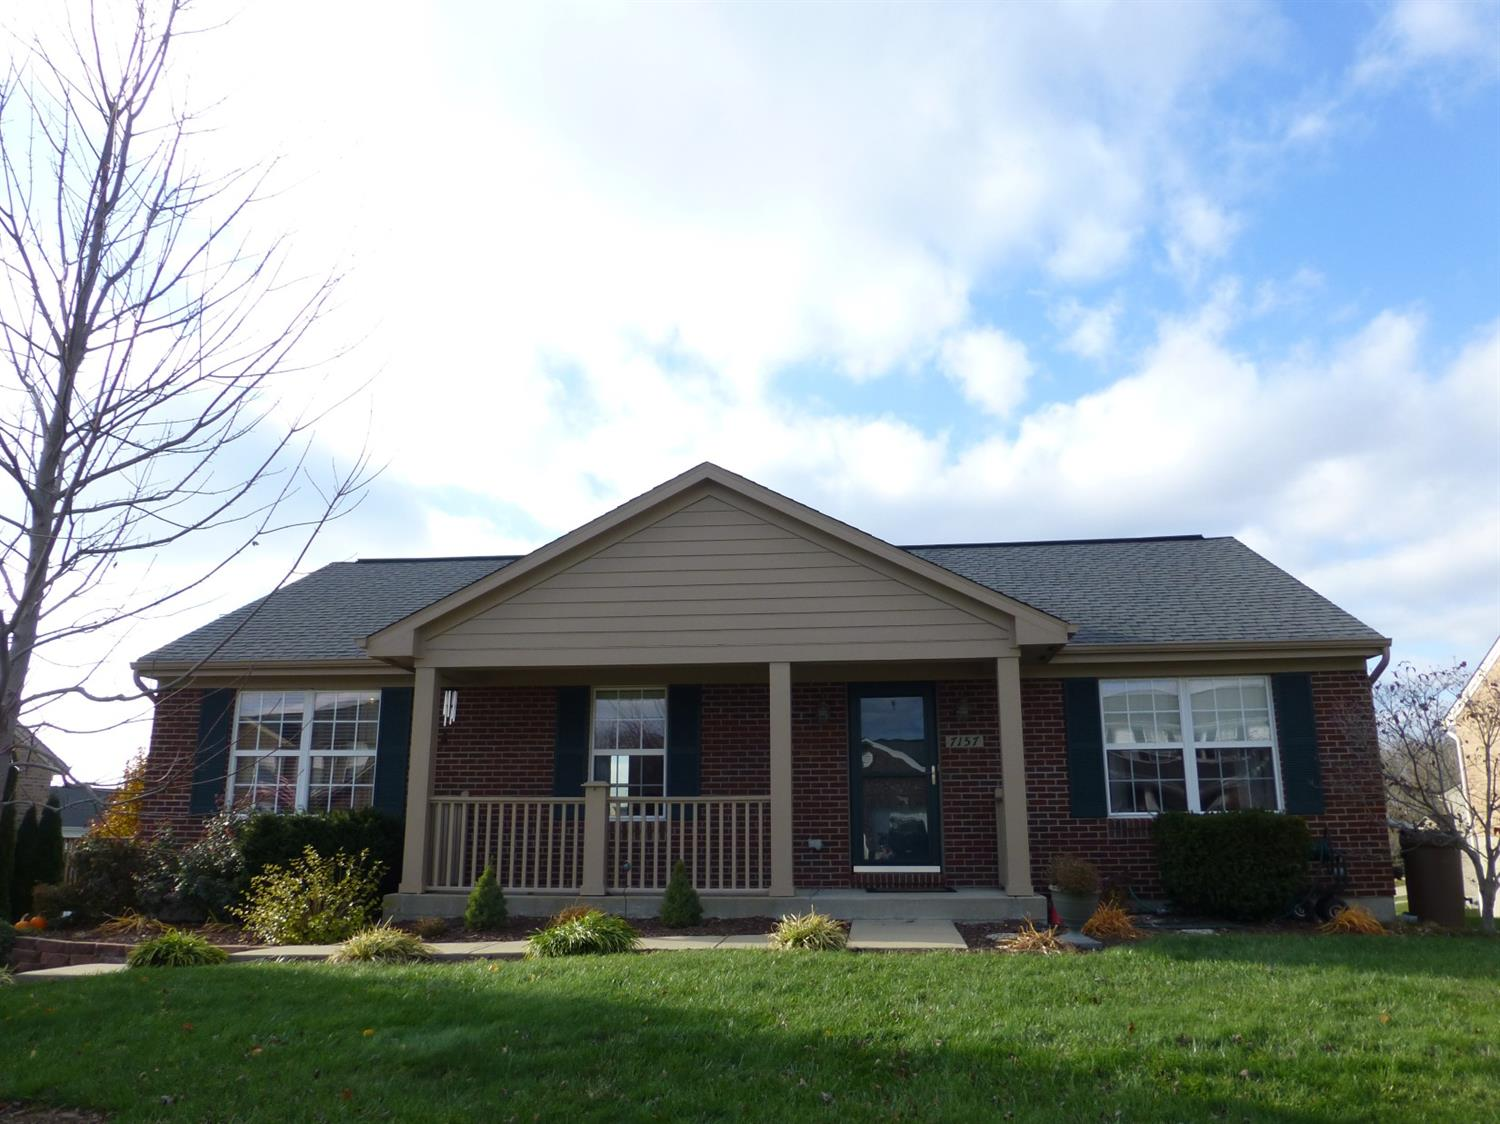 7157 Hillstone Ct, Florence, KY 41042